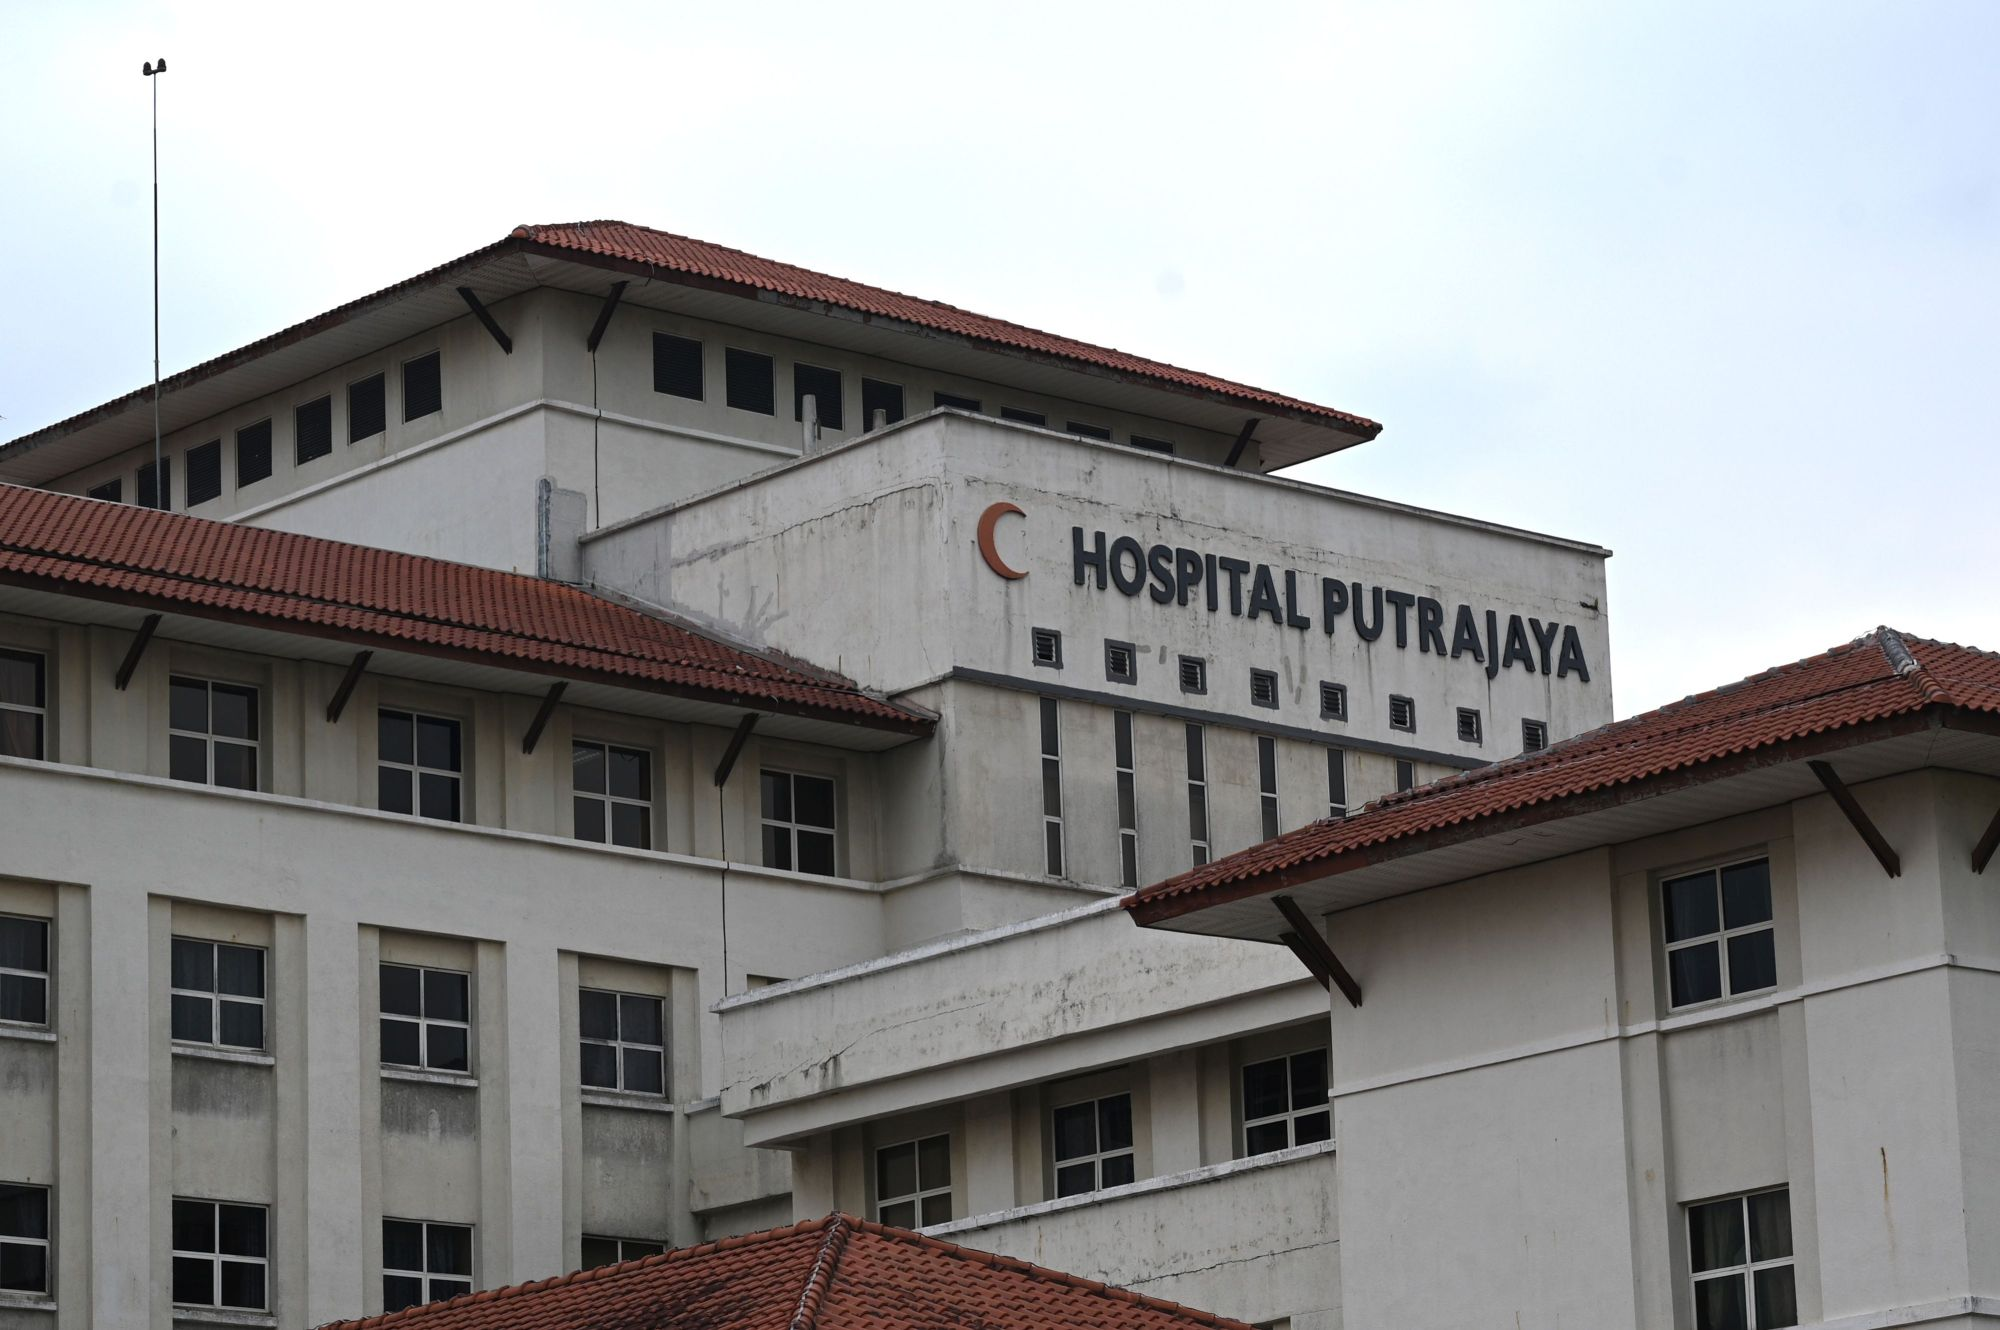 Badminton world No. 1 Kento Momota is receiving treatment at Putrajaya Hospital, which is near Kuala Lumpur, after a van he was riding in was involved in an accident that killed the driver early Monday morning in Malaysia. | AFP-JIJI